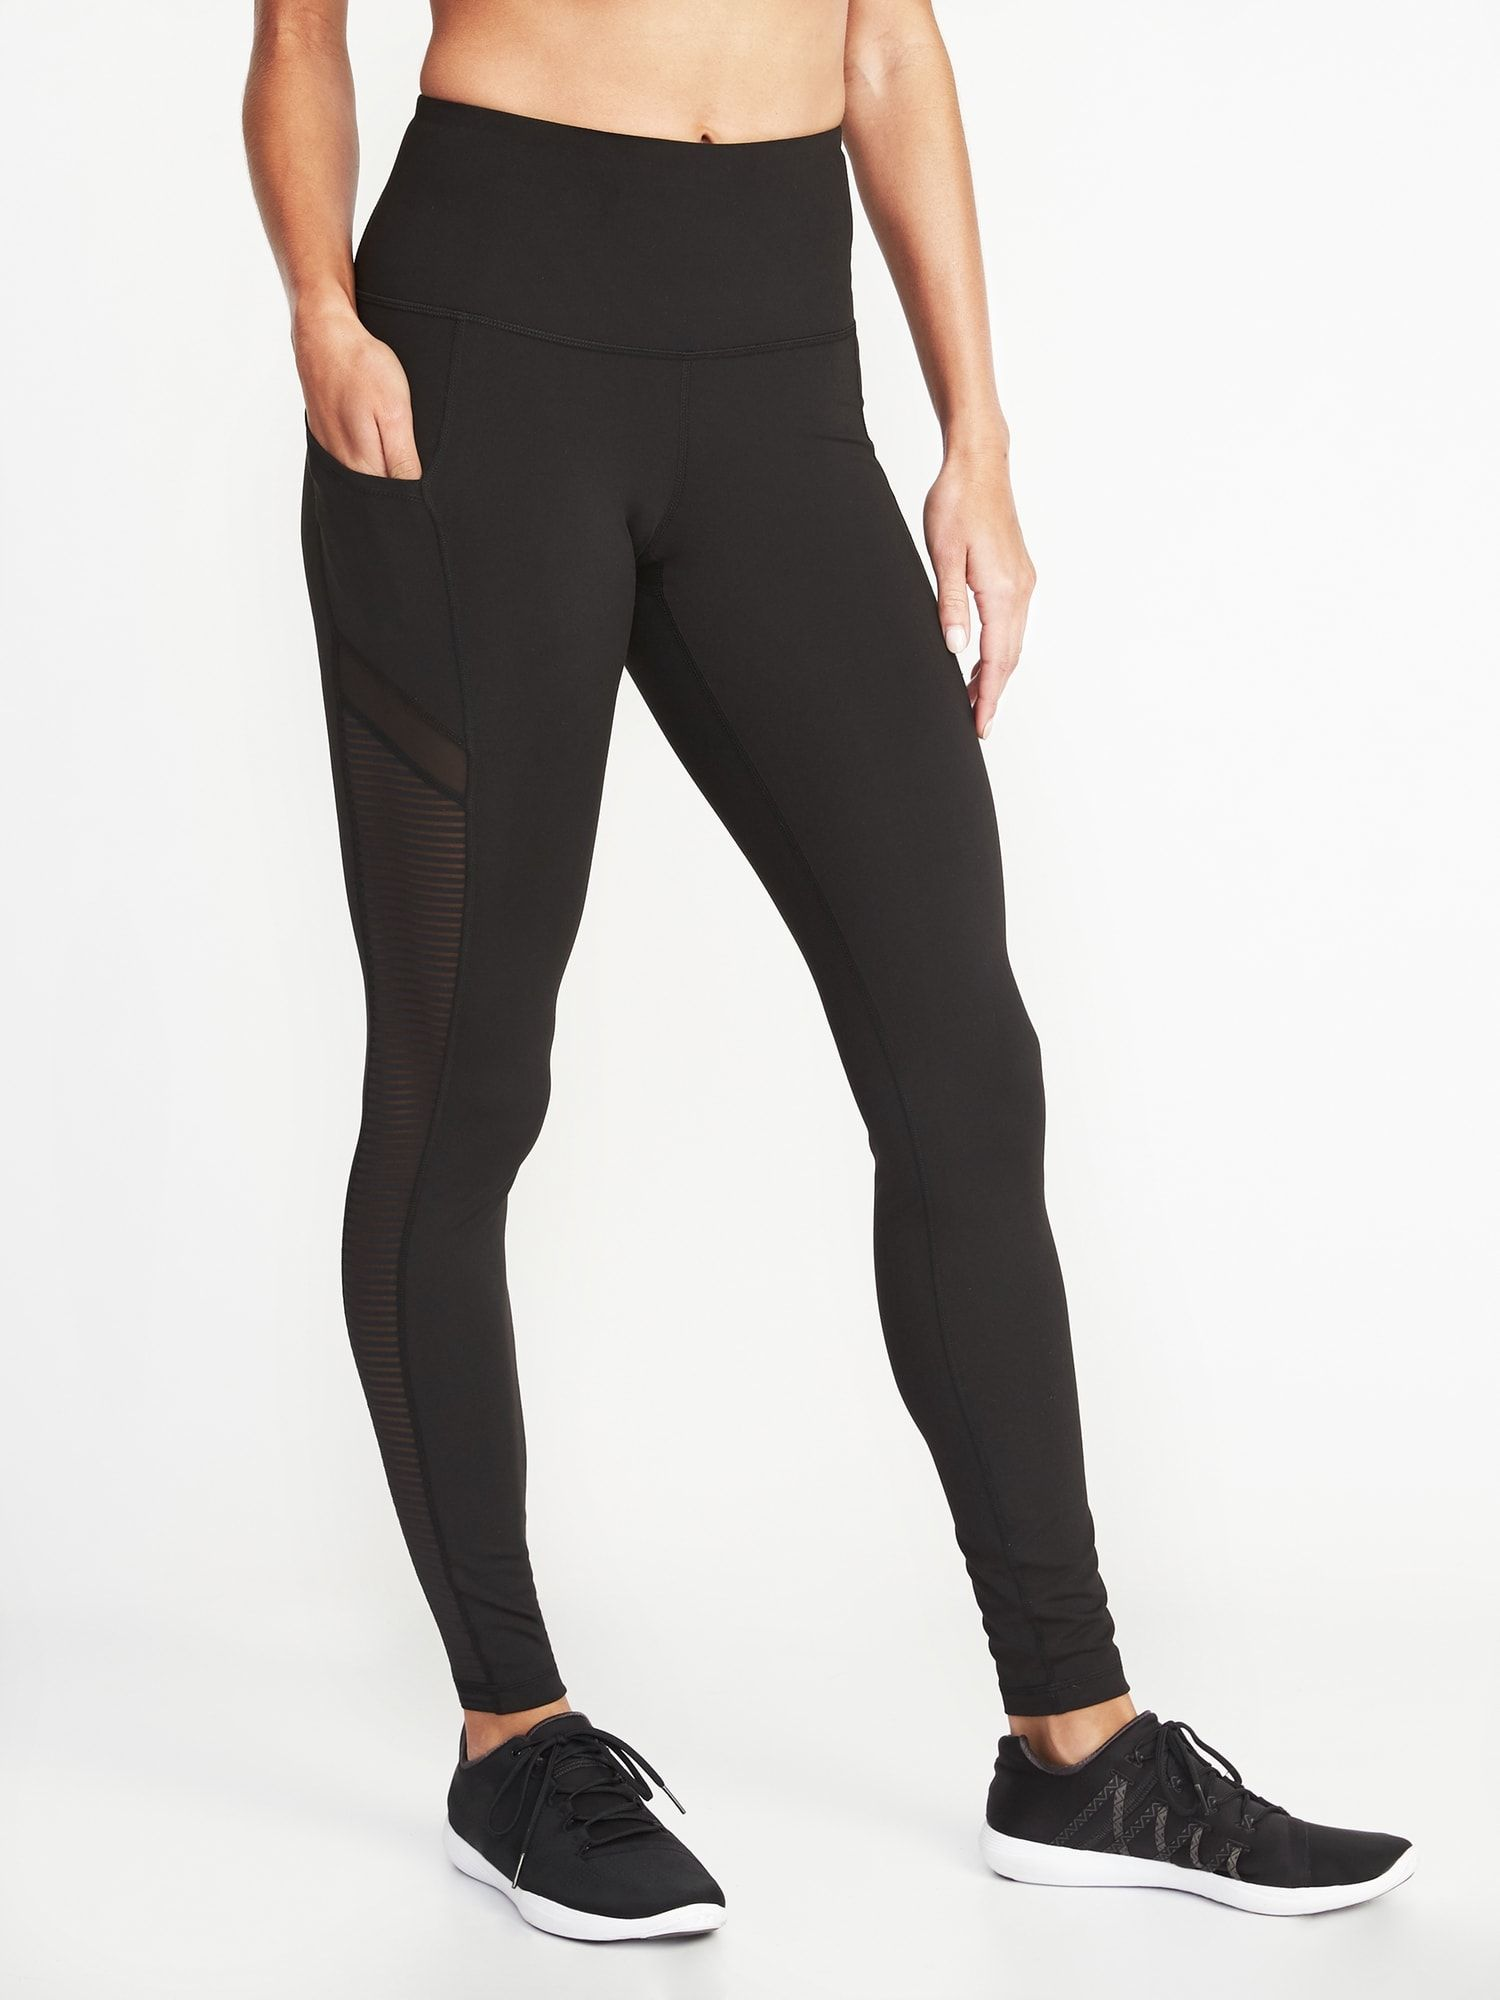 7d4d5b4d9791f8 workout leggings with a pocket Doesn't necessarily need to be old navy or  color black.. only ask that it is not see through when I bend down